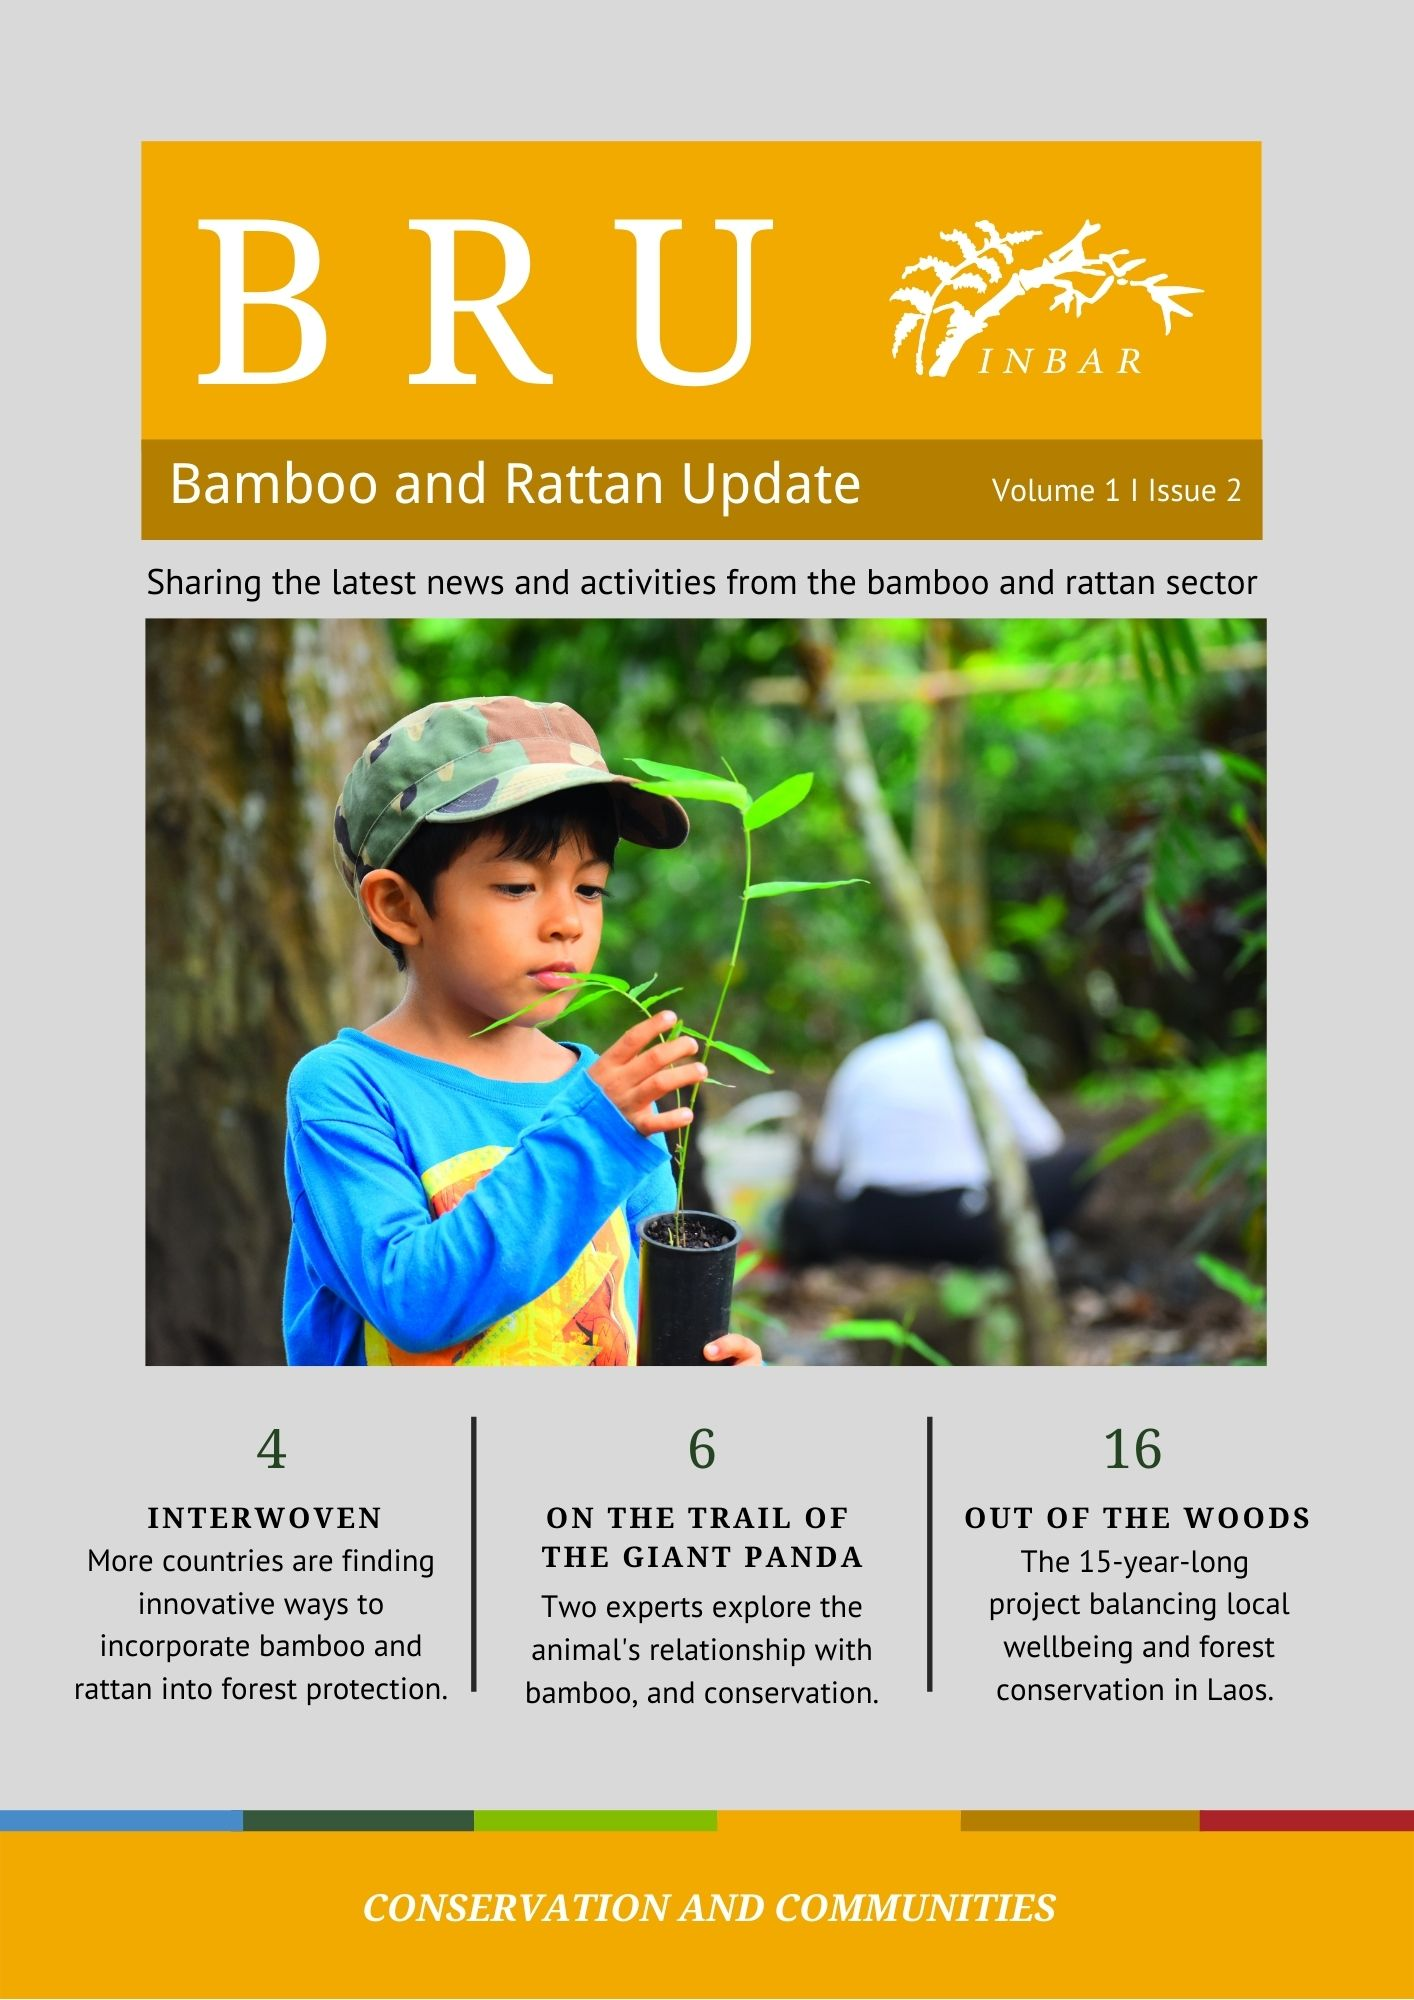 'Conservation and Communities': Bamboo and Rattan Update Volume 1 Issue 2